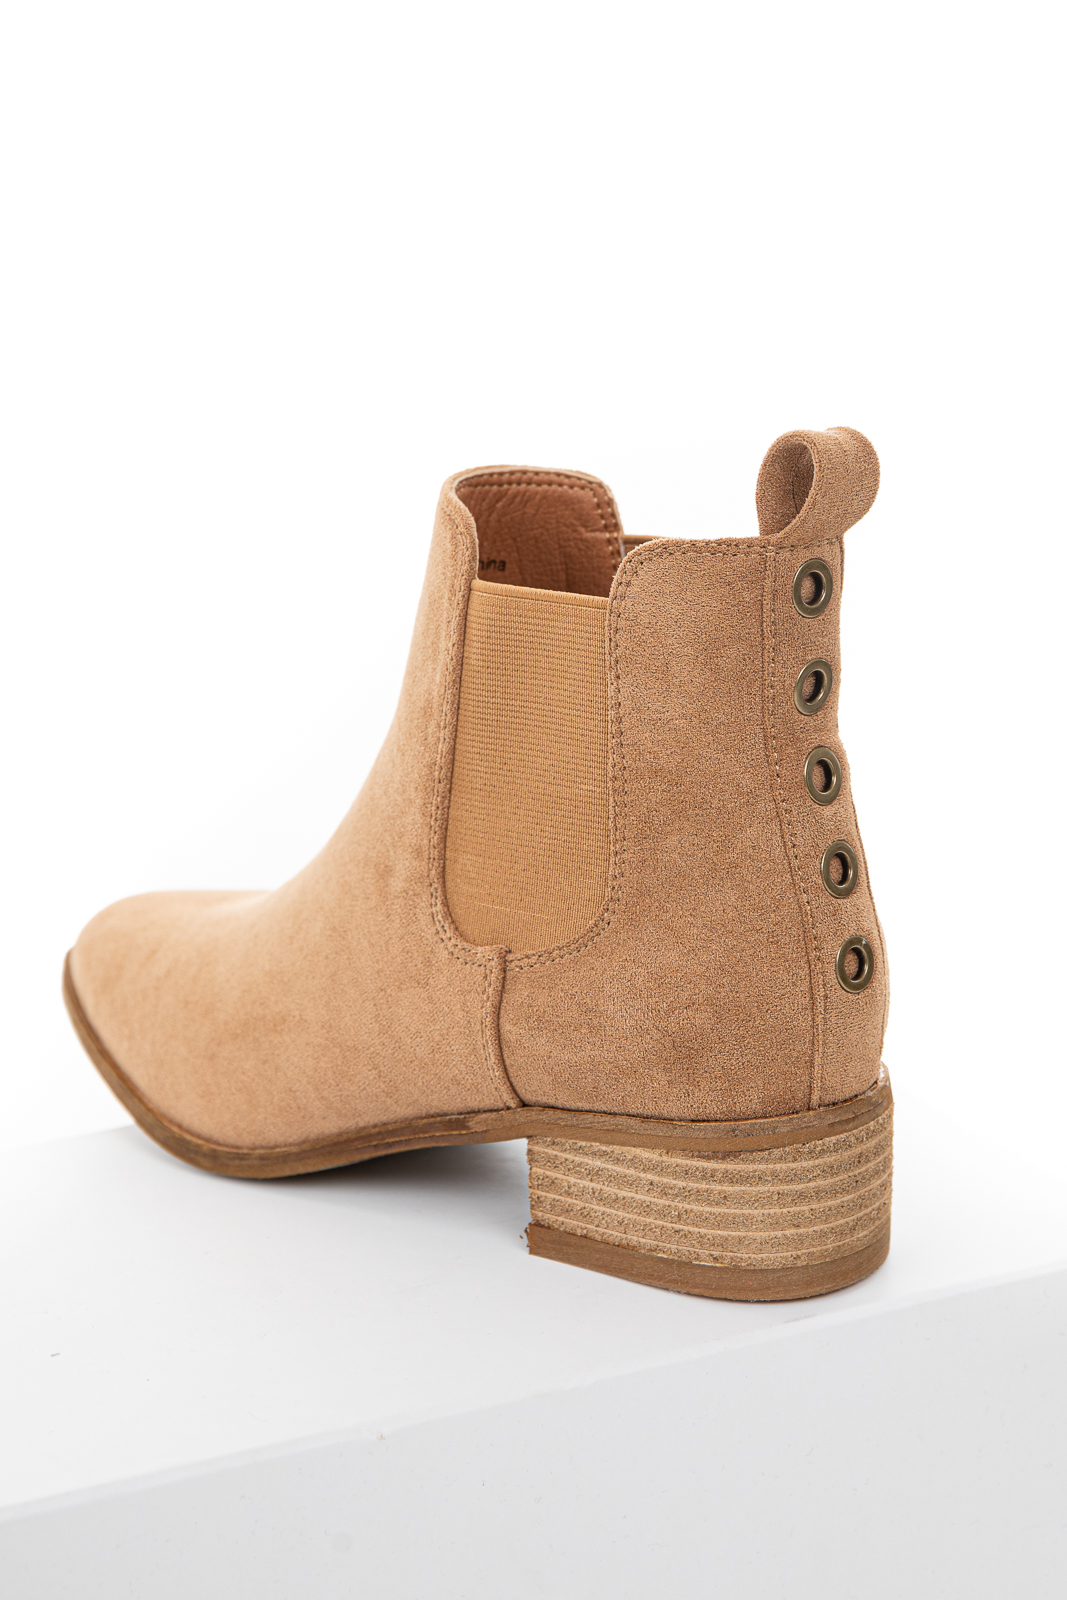 Camel Faux Suede Elastic Slip On Booties with Eyelet Details